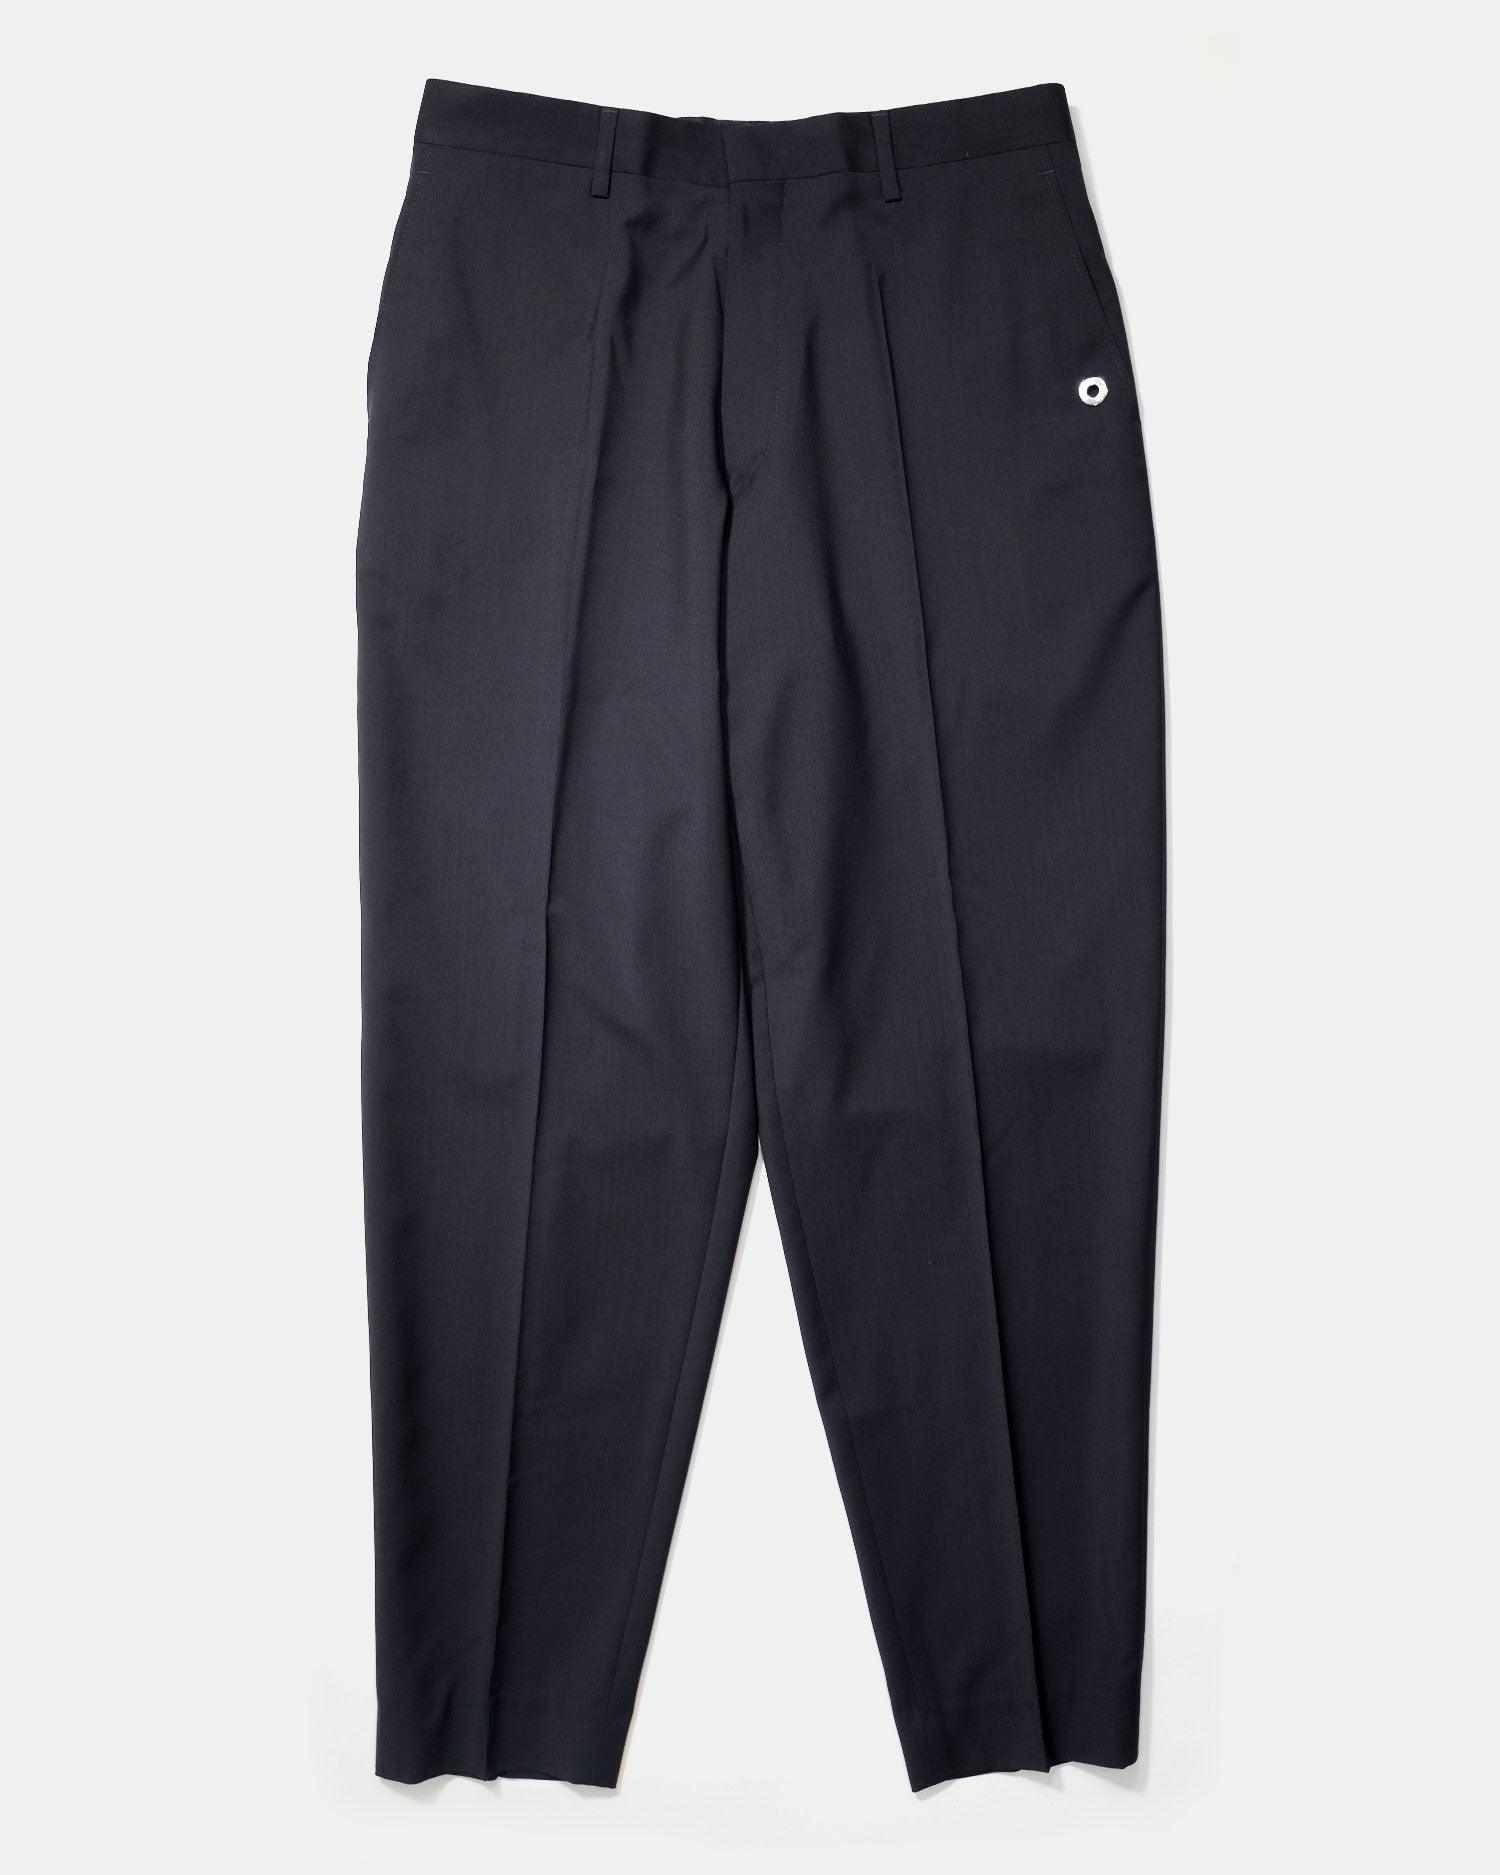 Études Revolte Trousers Black